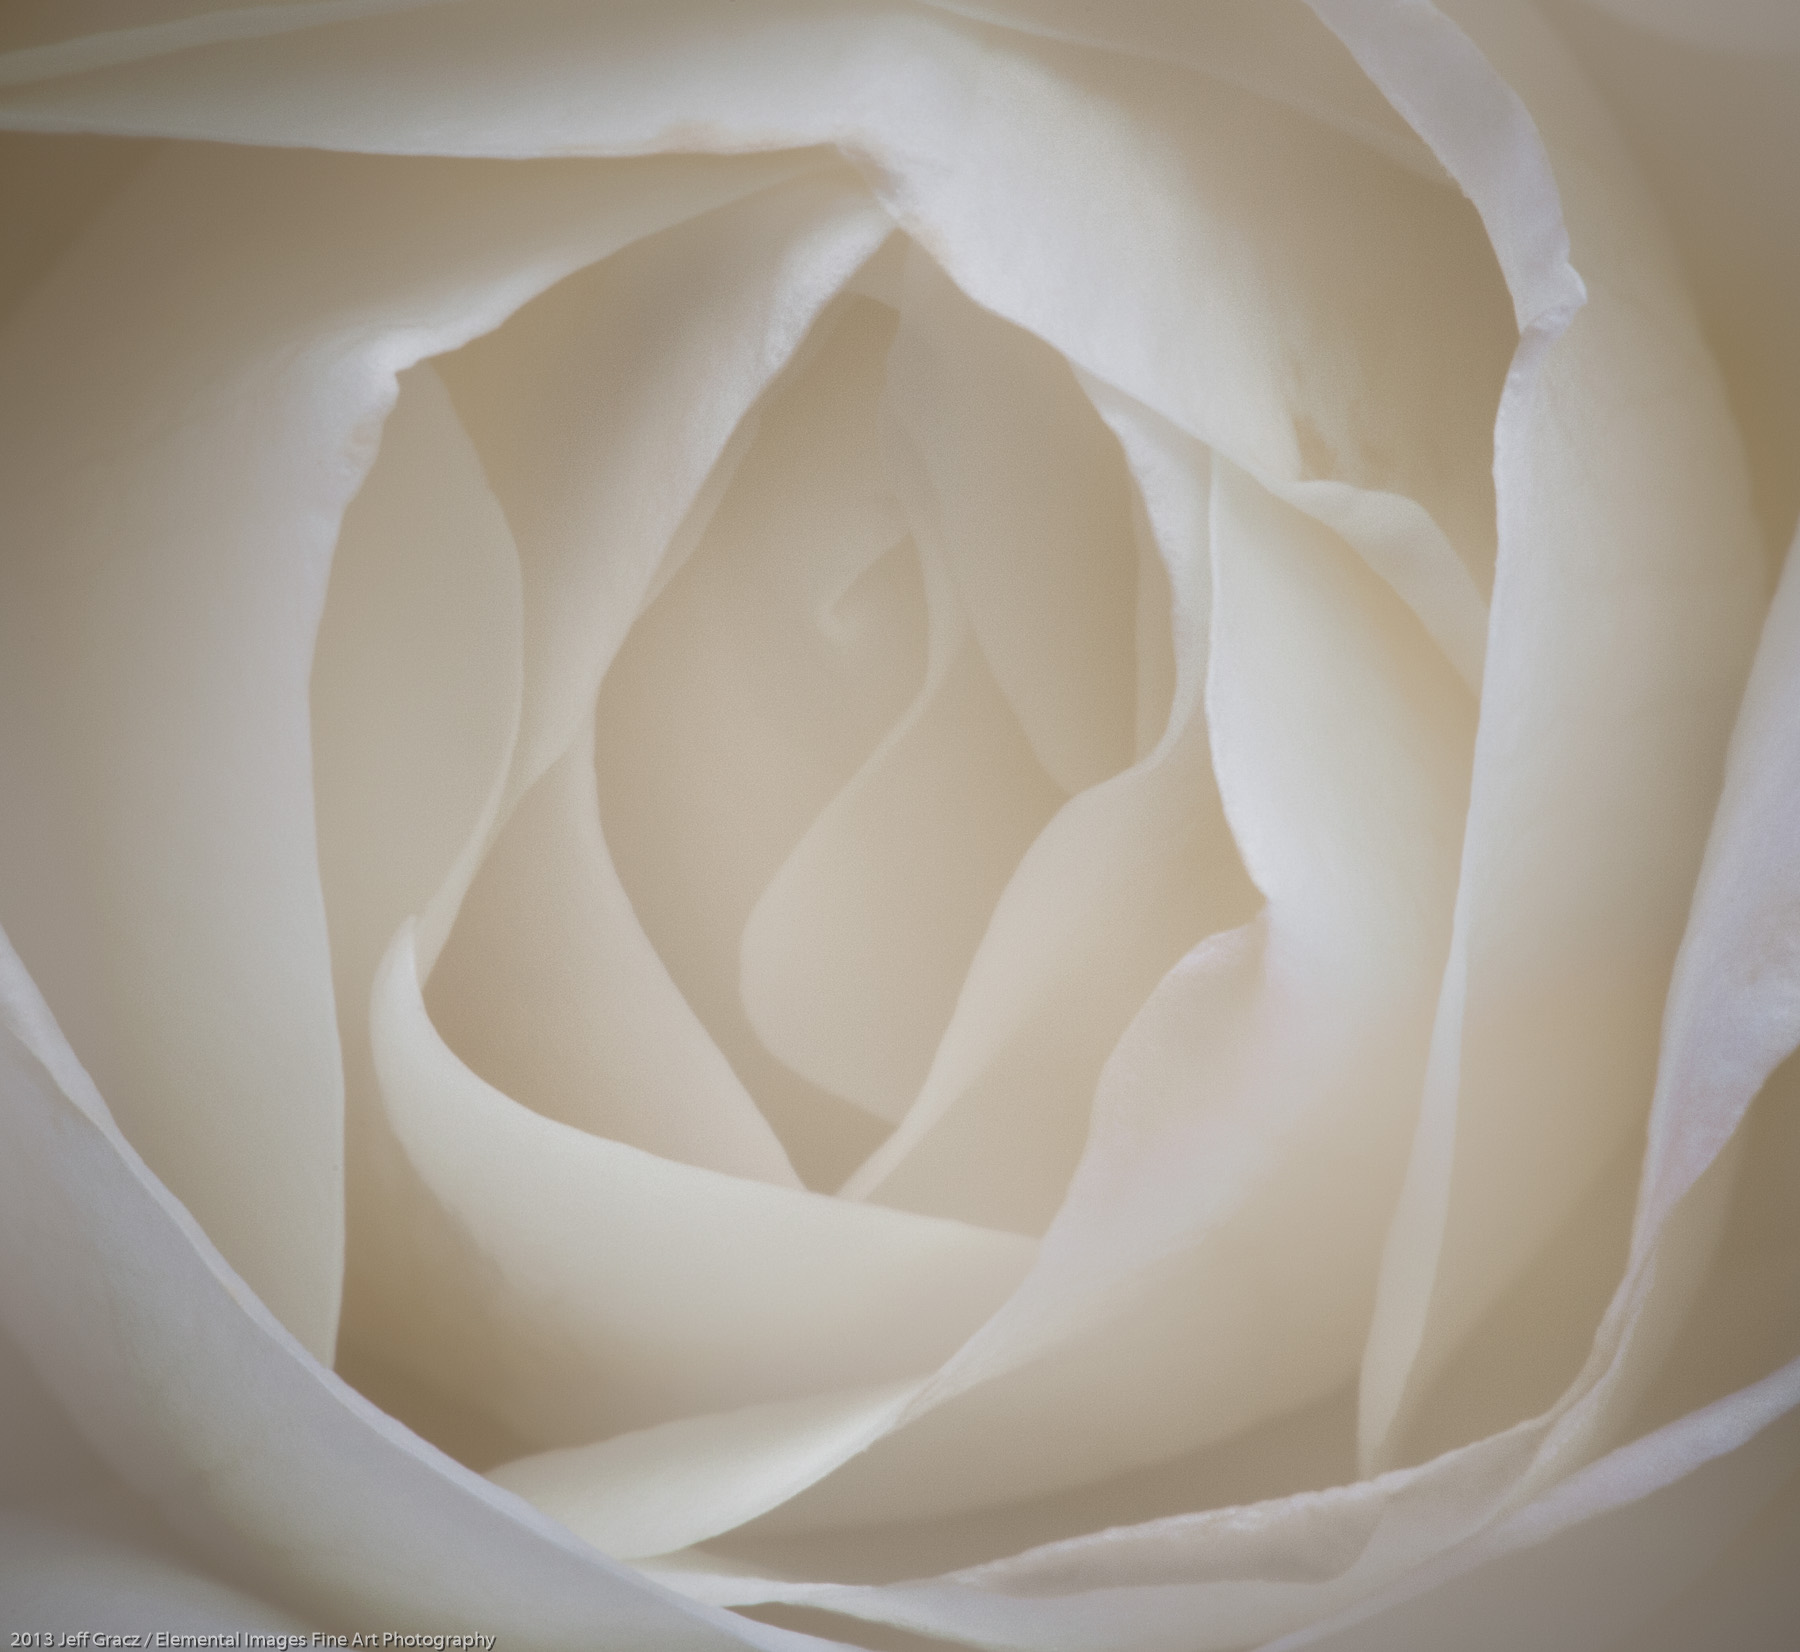 Roses XXXVIII | Portland | OR | USA - © 2013 Jeff Gracz / Elemental Images Fine Art Photography - All Rights Reserved Worldwide